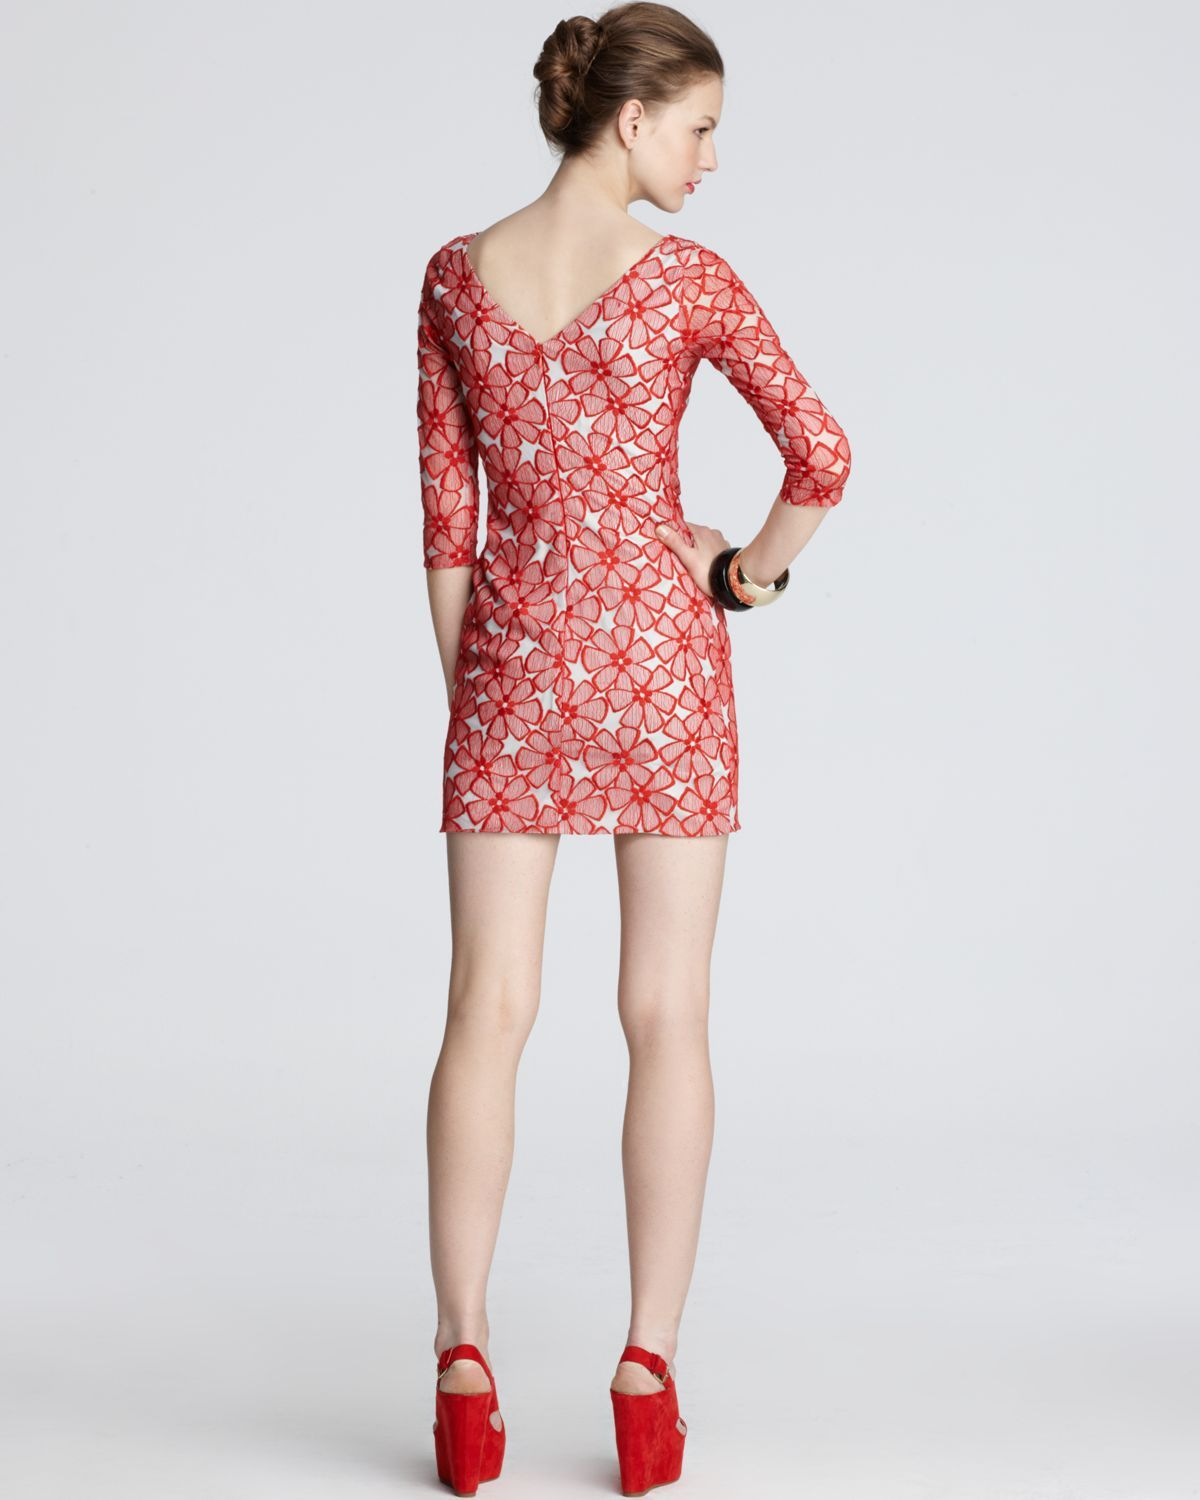 Obsessed with this dress. Love DVF | Look Book | Pinterest